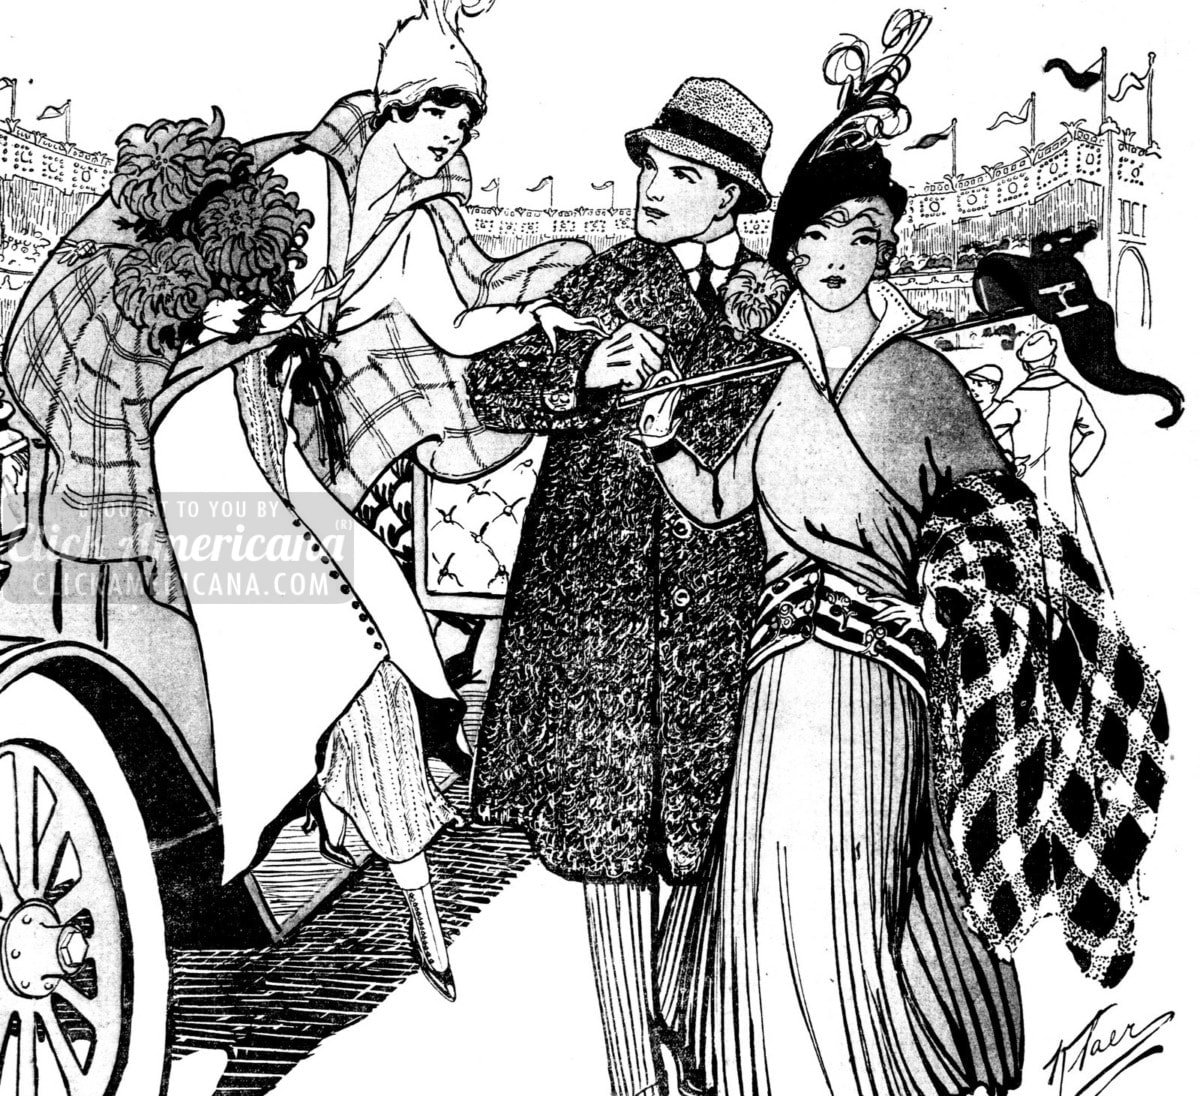 Clothing for women from the 1900s